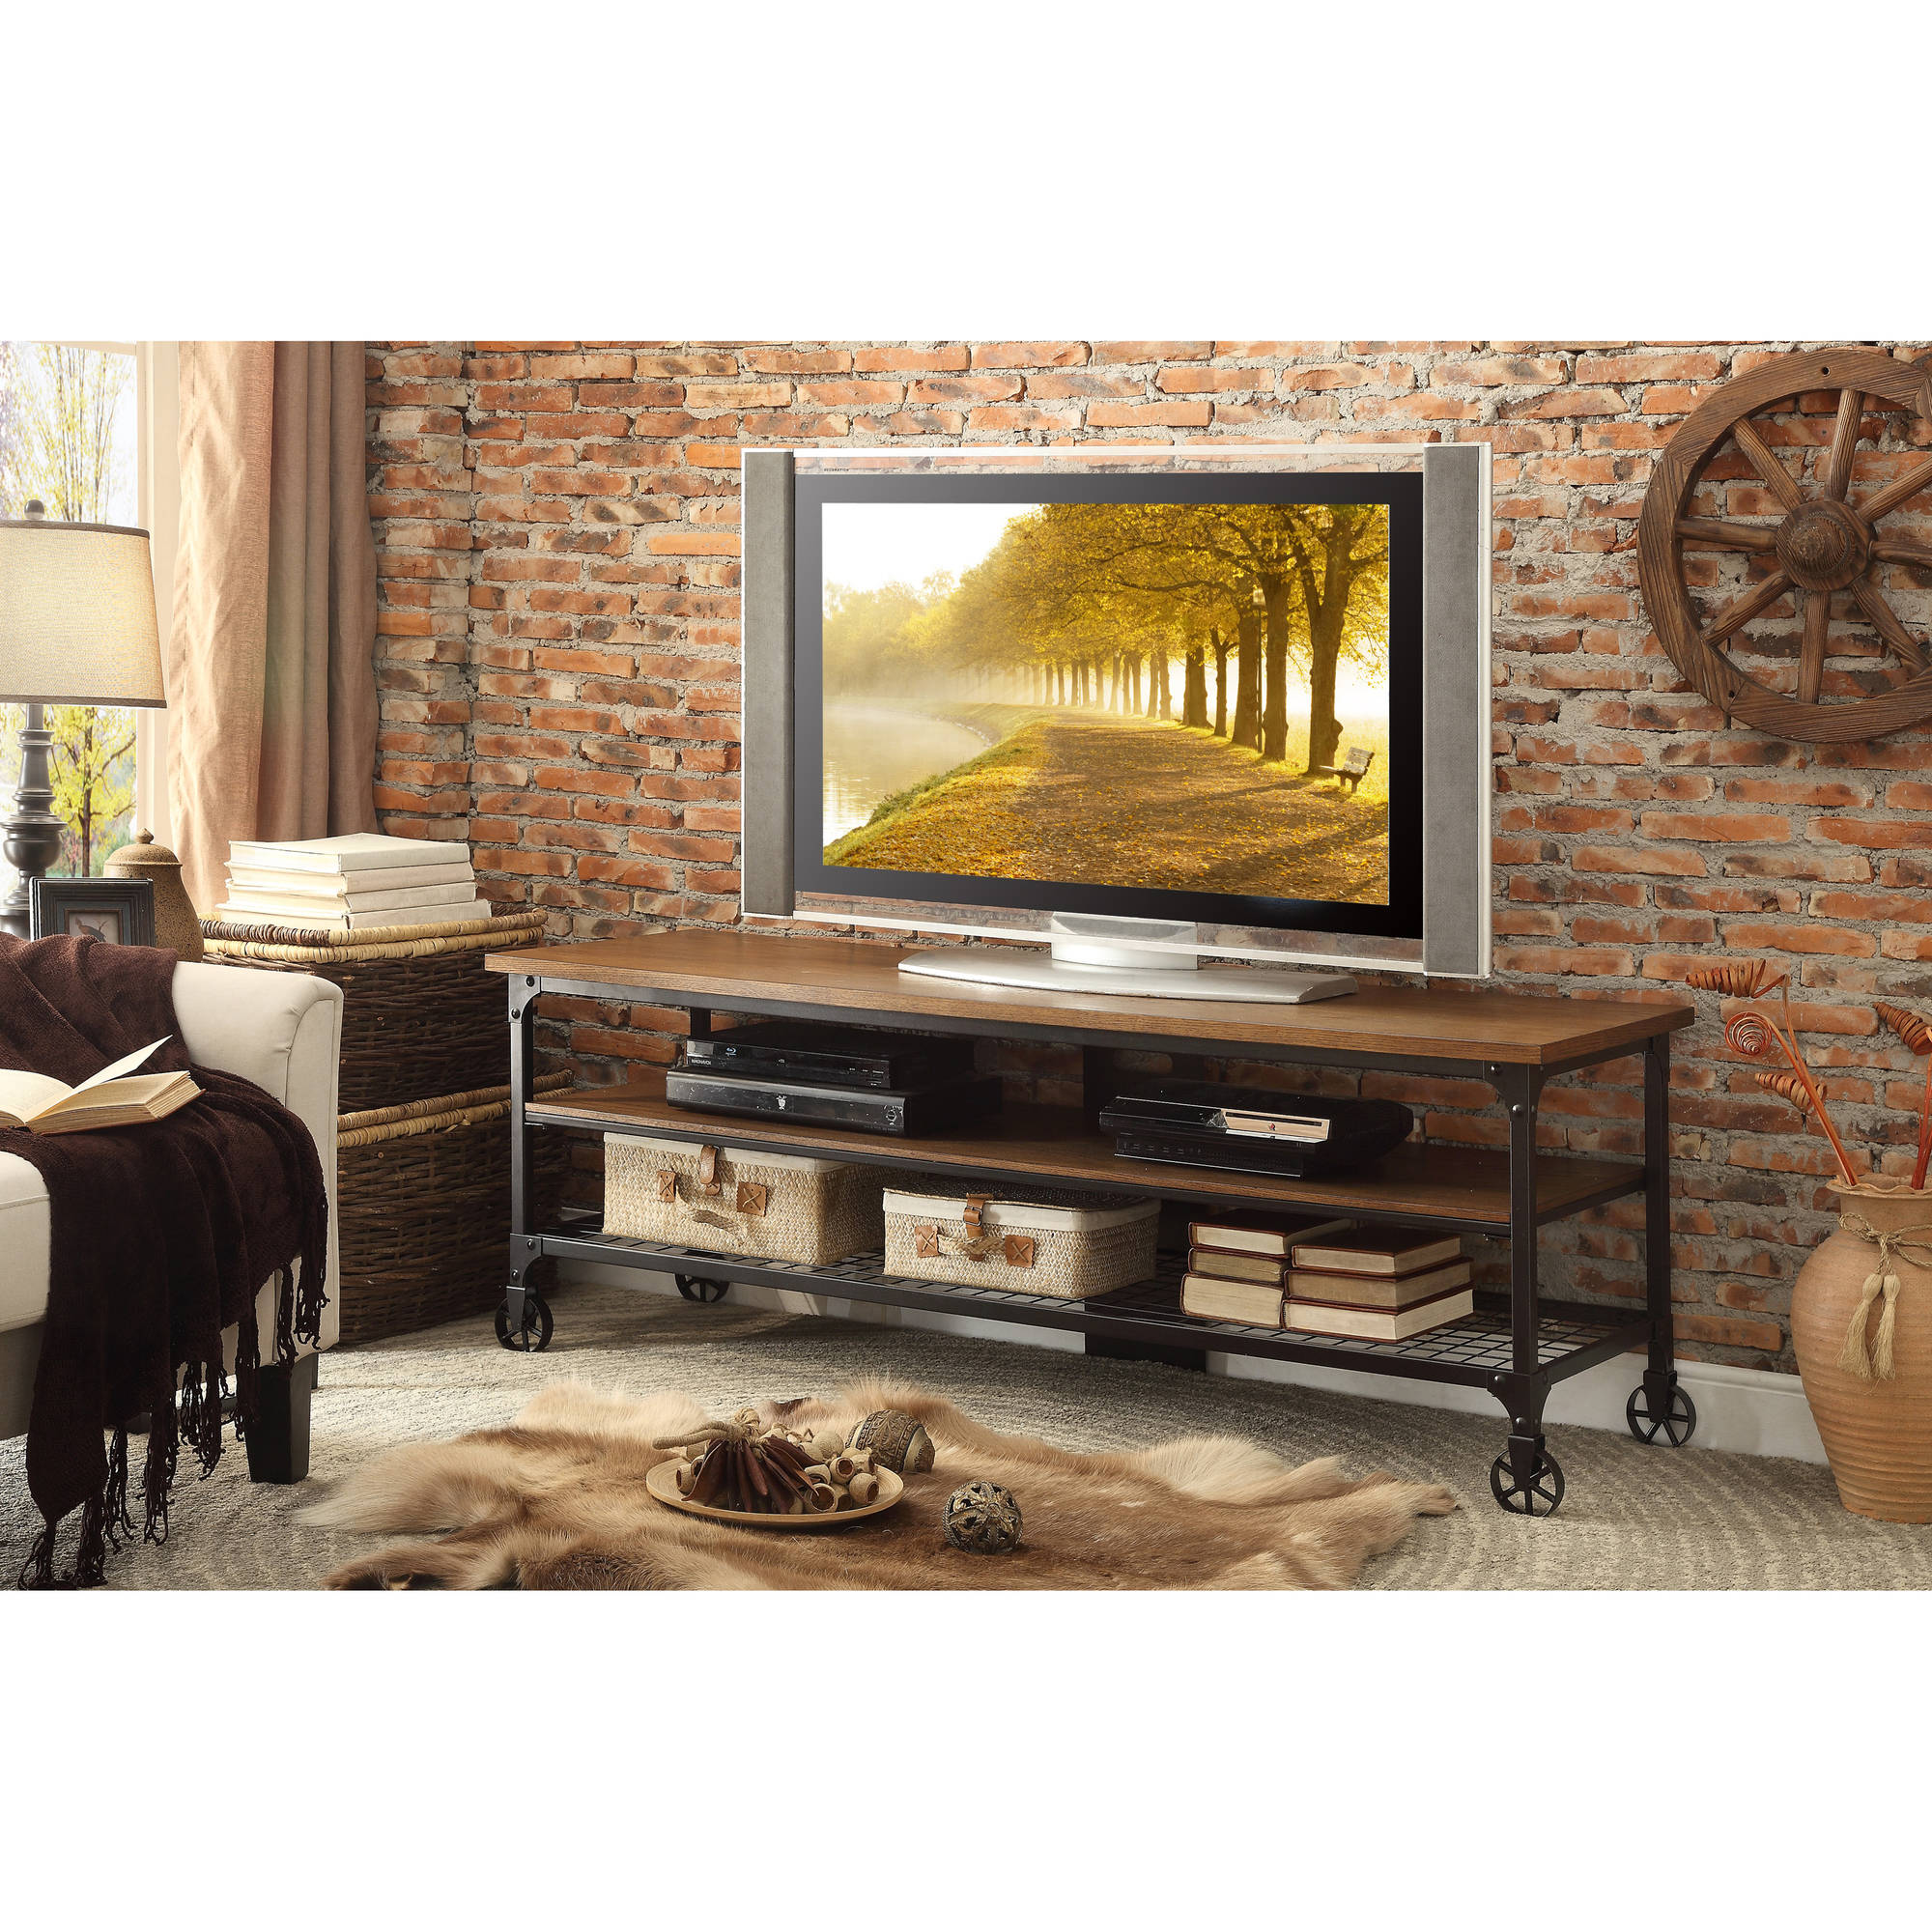 Chelsea Lane TV Stand with Handscraped Wooden Weathered Top, Brown